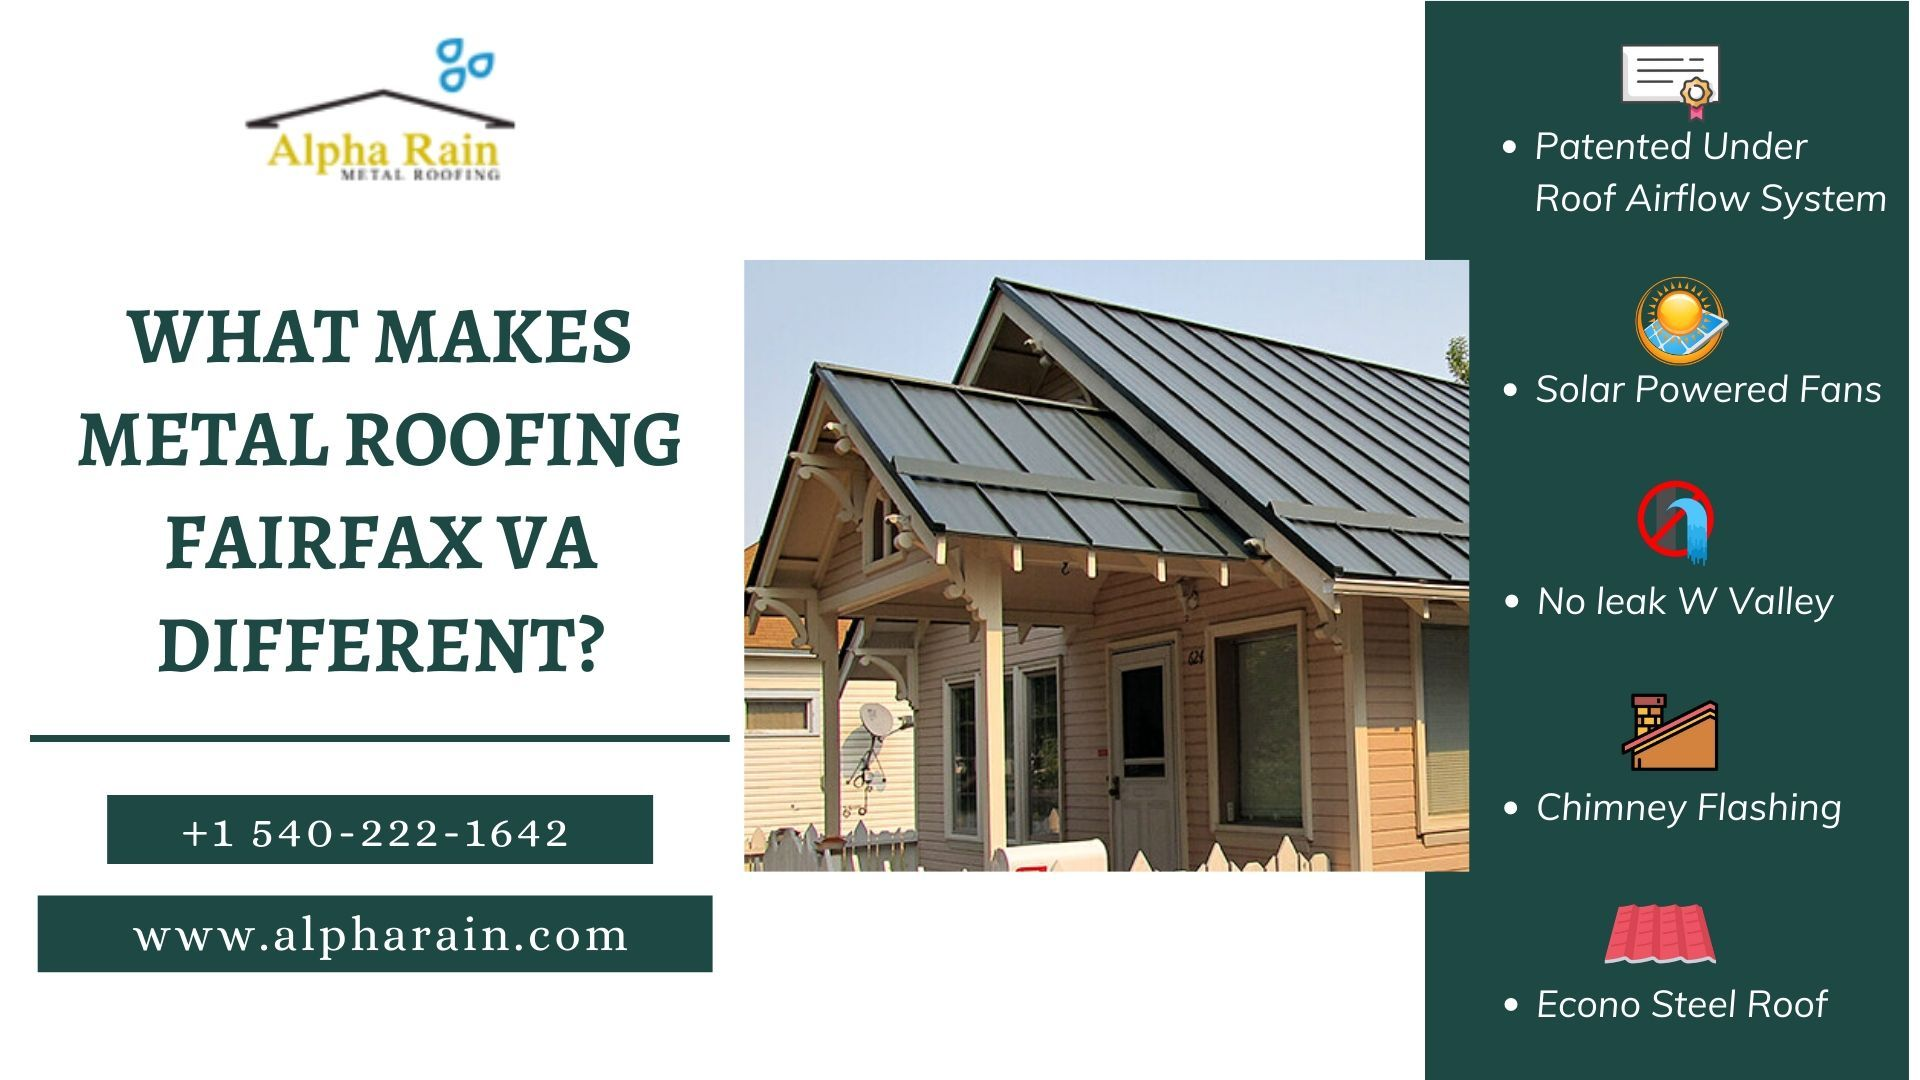 The Roofing Contractor In Fairfax Va Installs Its Patented Metal Roofing System That Is Highly Durable And Cap In 2020 Metal Roof Metal Roofing Systems Roofing Systems